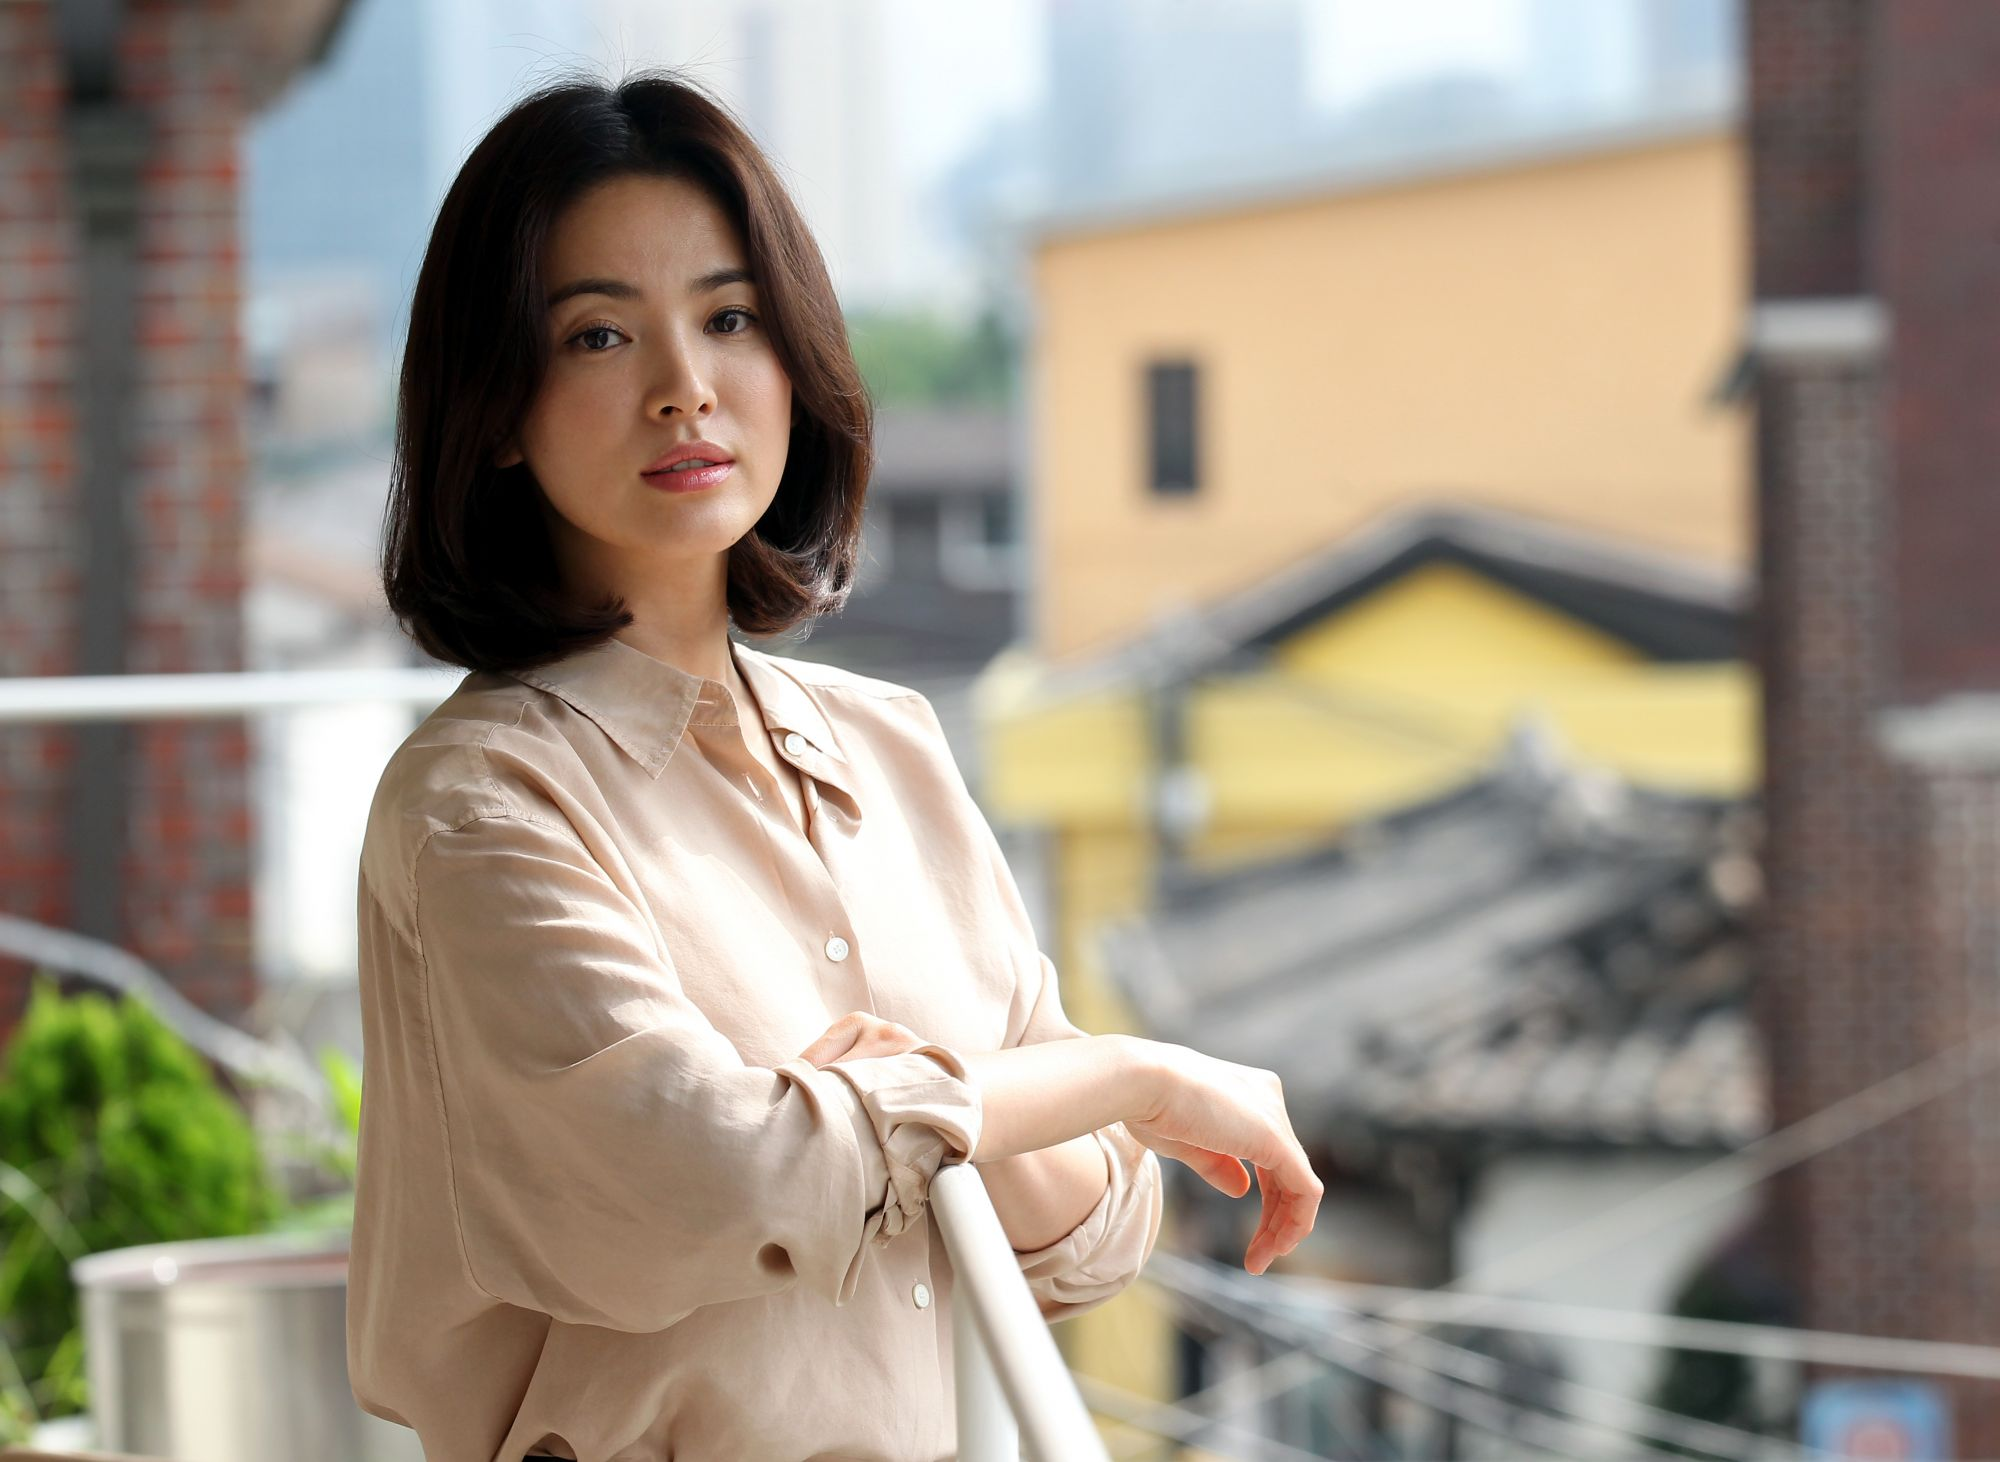 SEOUL, SOUTH KOREA - AUGUST 25:  Song Hye-Kyo poses for photographs on August 25, 2014 in Seoul, South Korea.  (Photo by ilgan Sports/Multi-Bits via Getty Images)